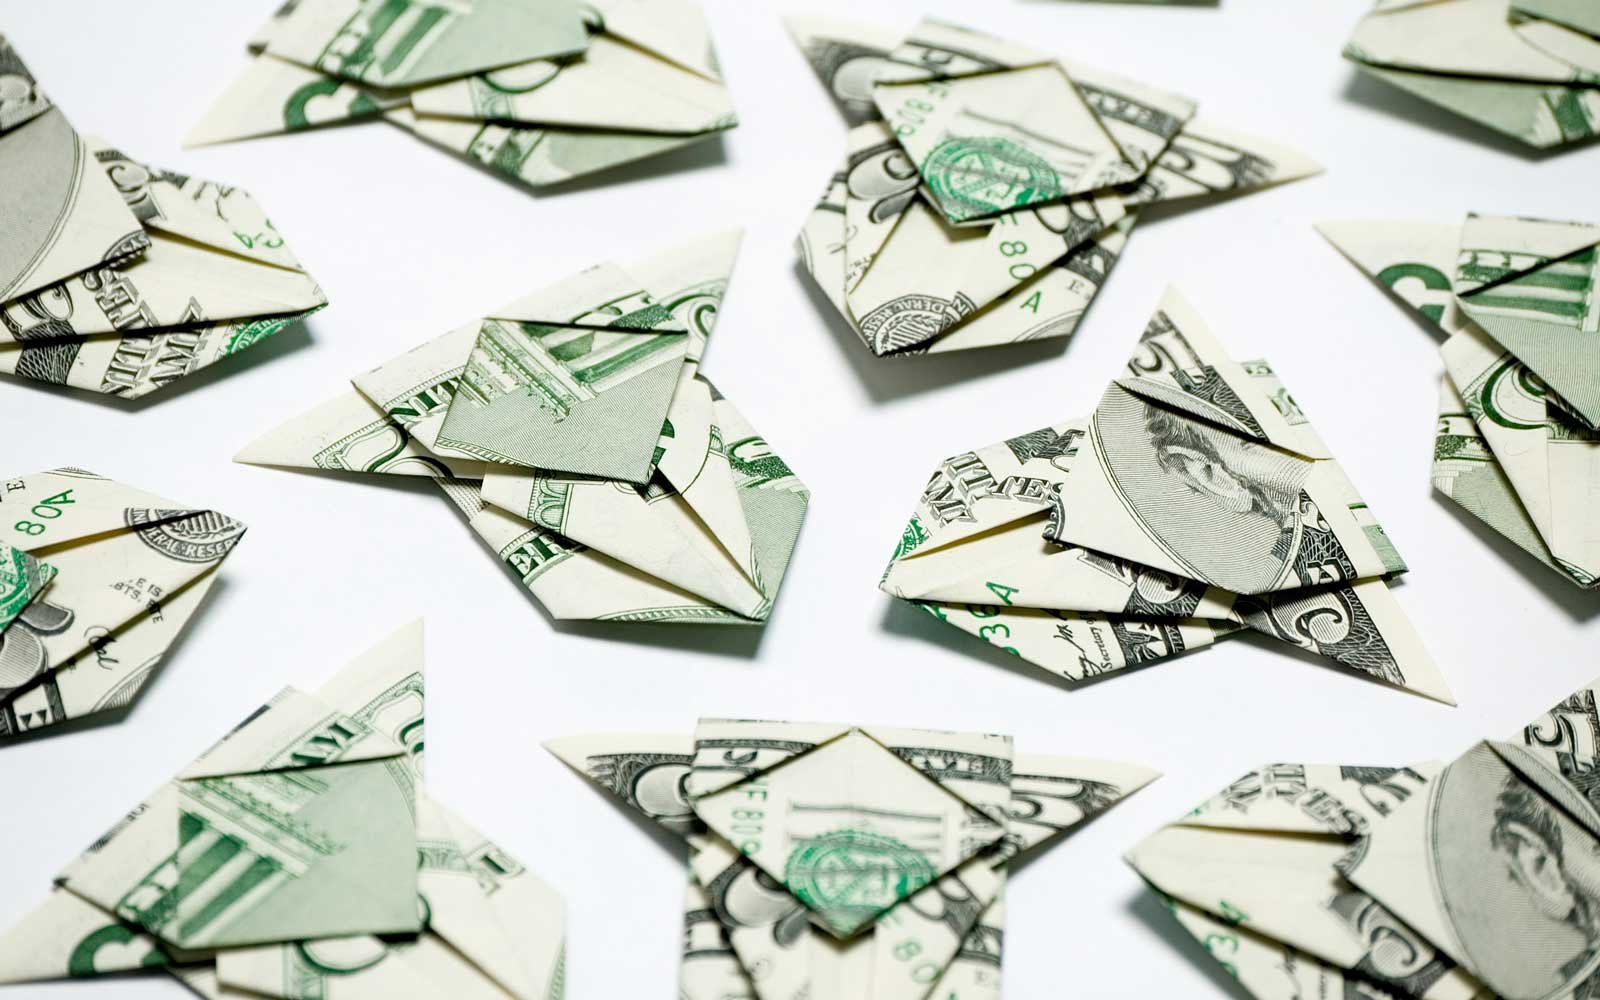 Airplanes made with some 5 dollar bills